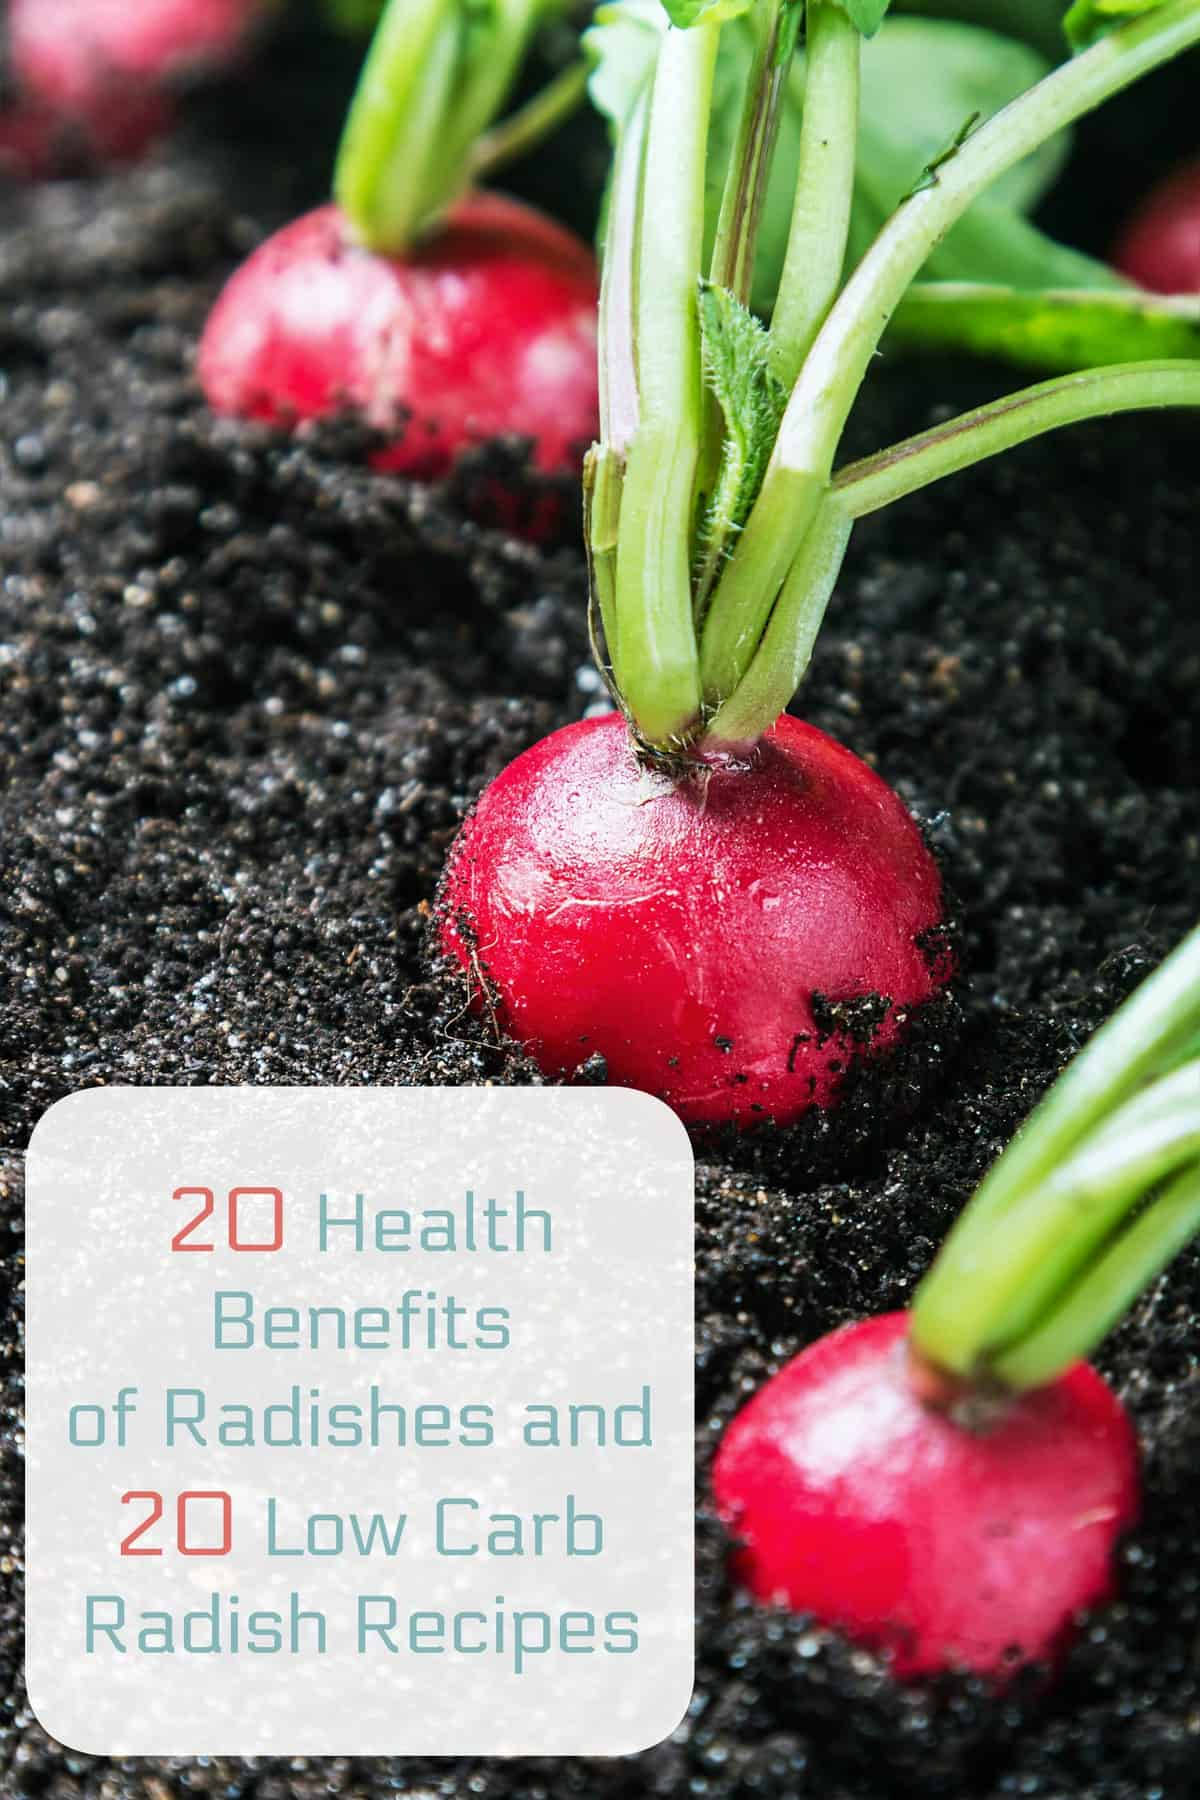 20 Health Benefits of Radishes and 20 Low Carb Radish Recipes | Healthy Living in Body and Mind